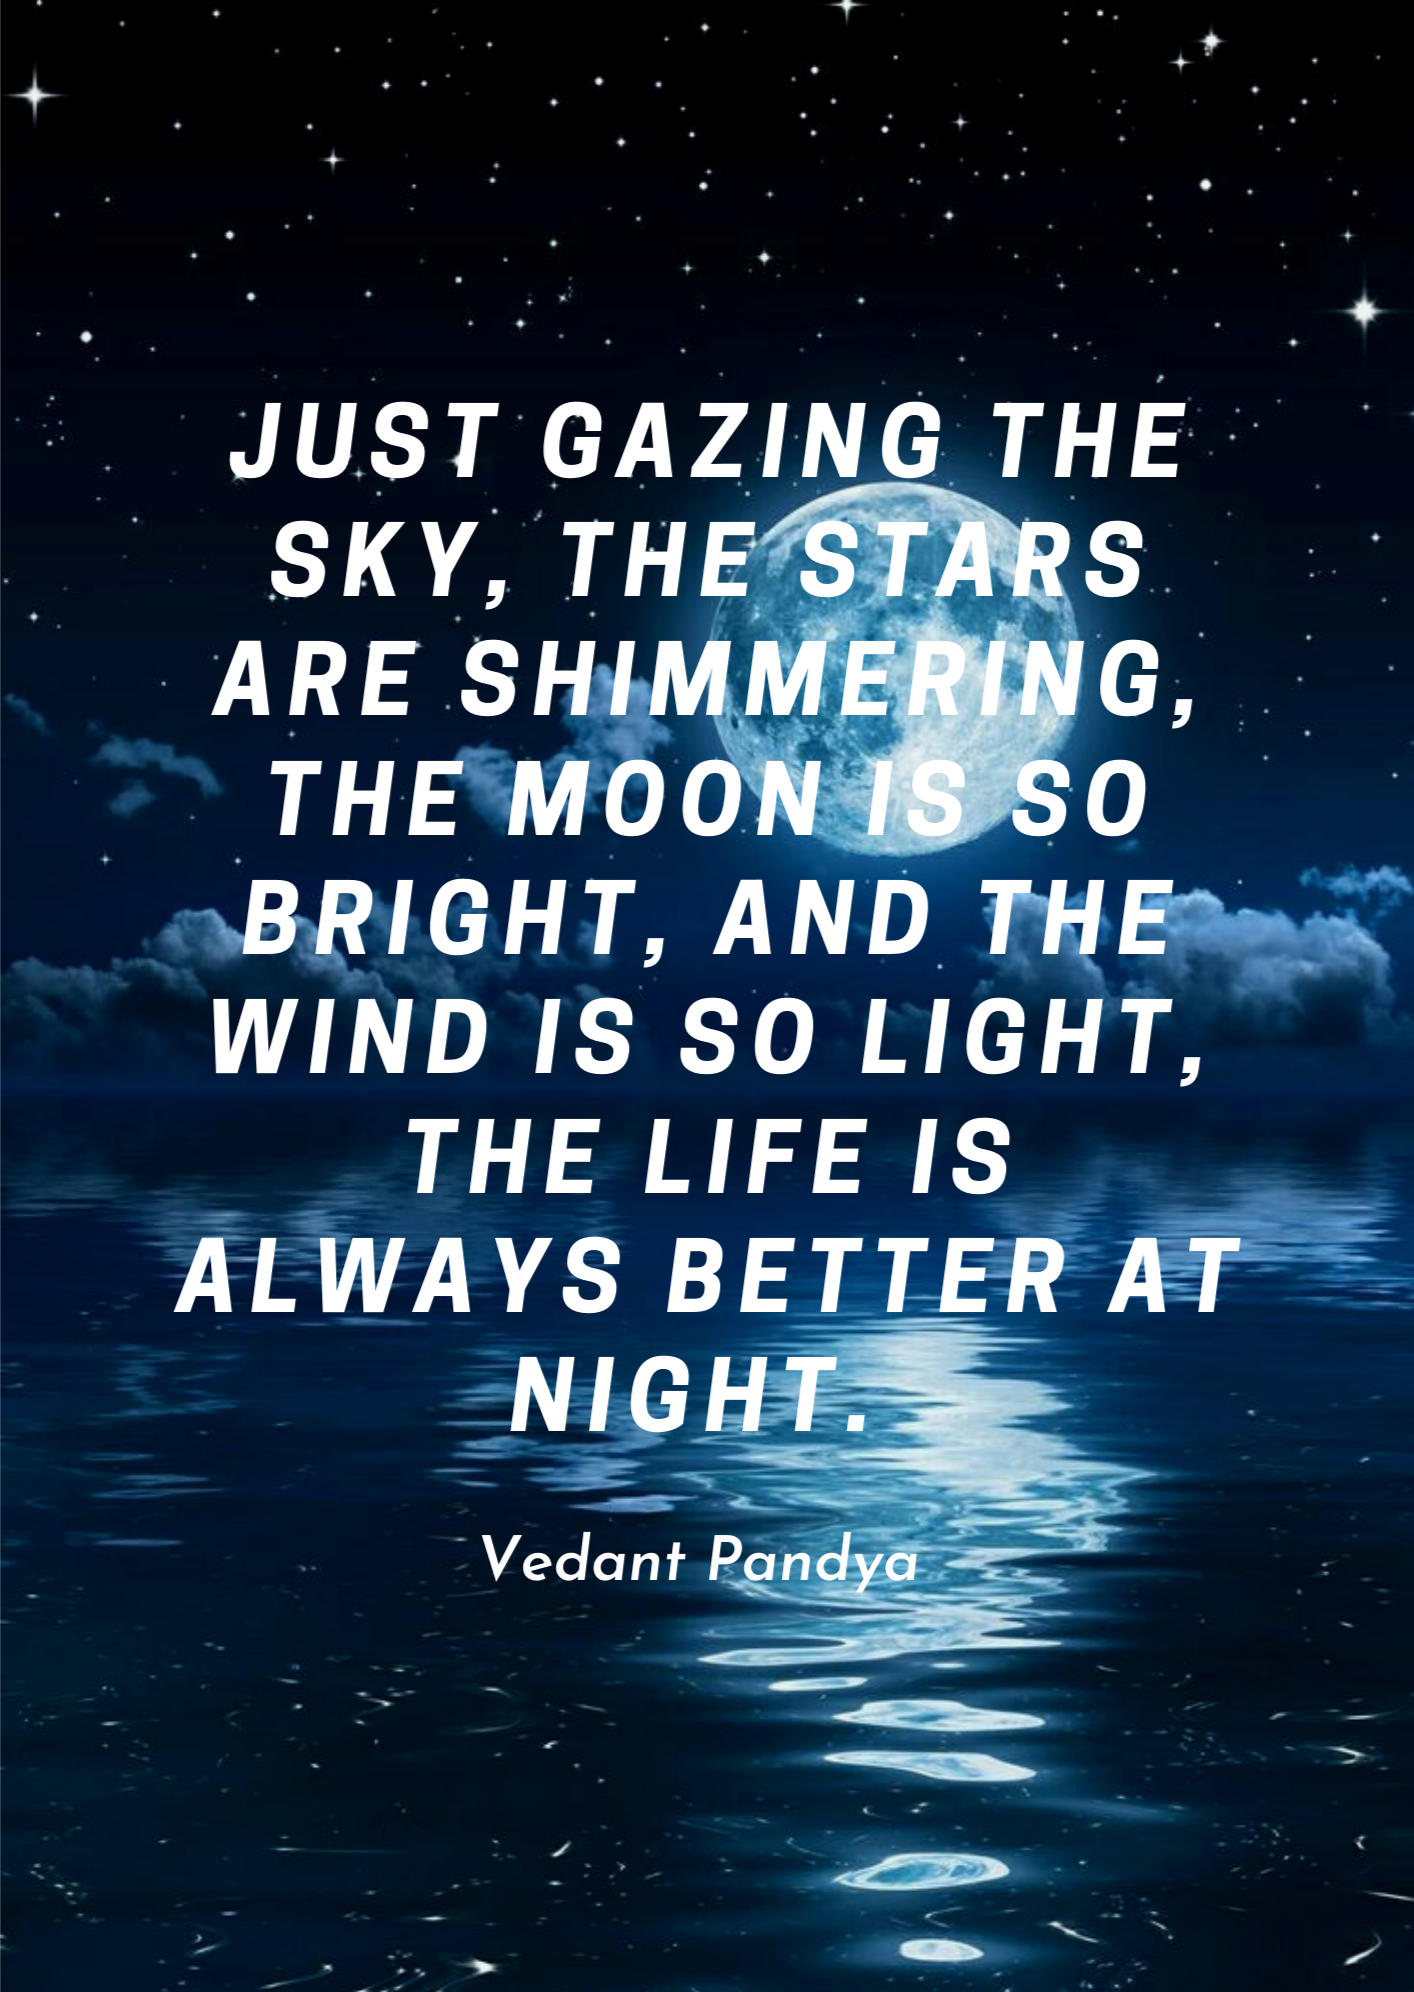 Just gazing the sky, The stars are shimmering, The moon is so bright, and The wind is so light, The life is always better at night. -Vedant Pandya [1414×1992]